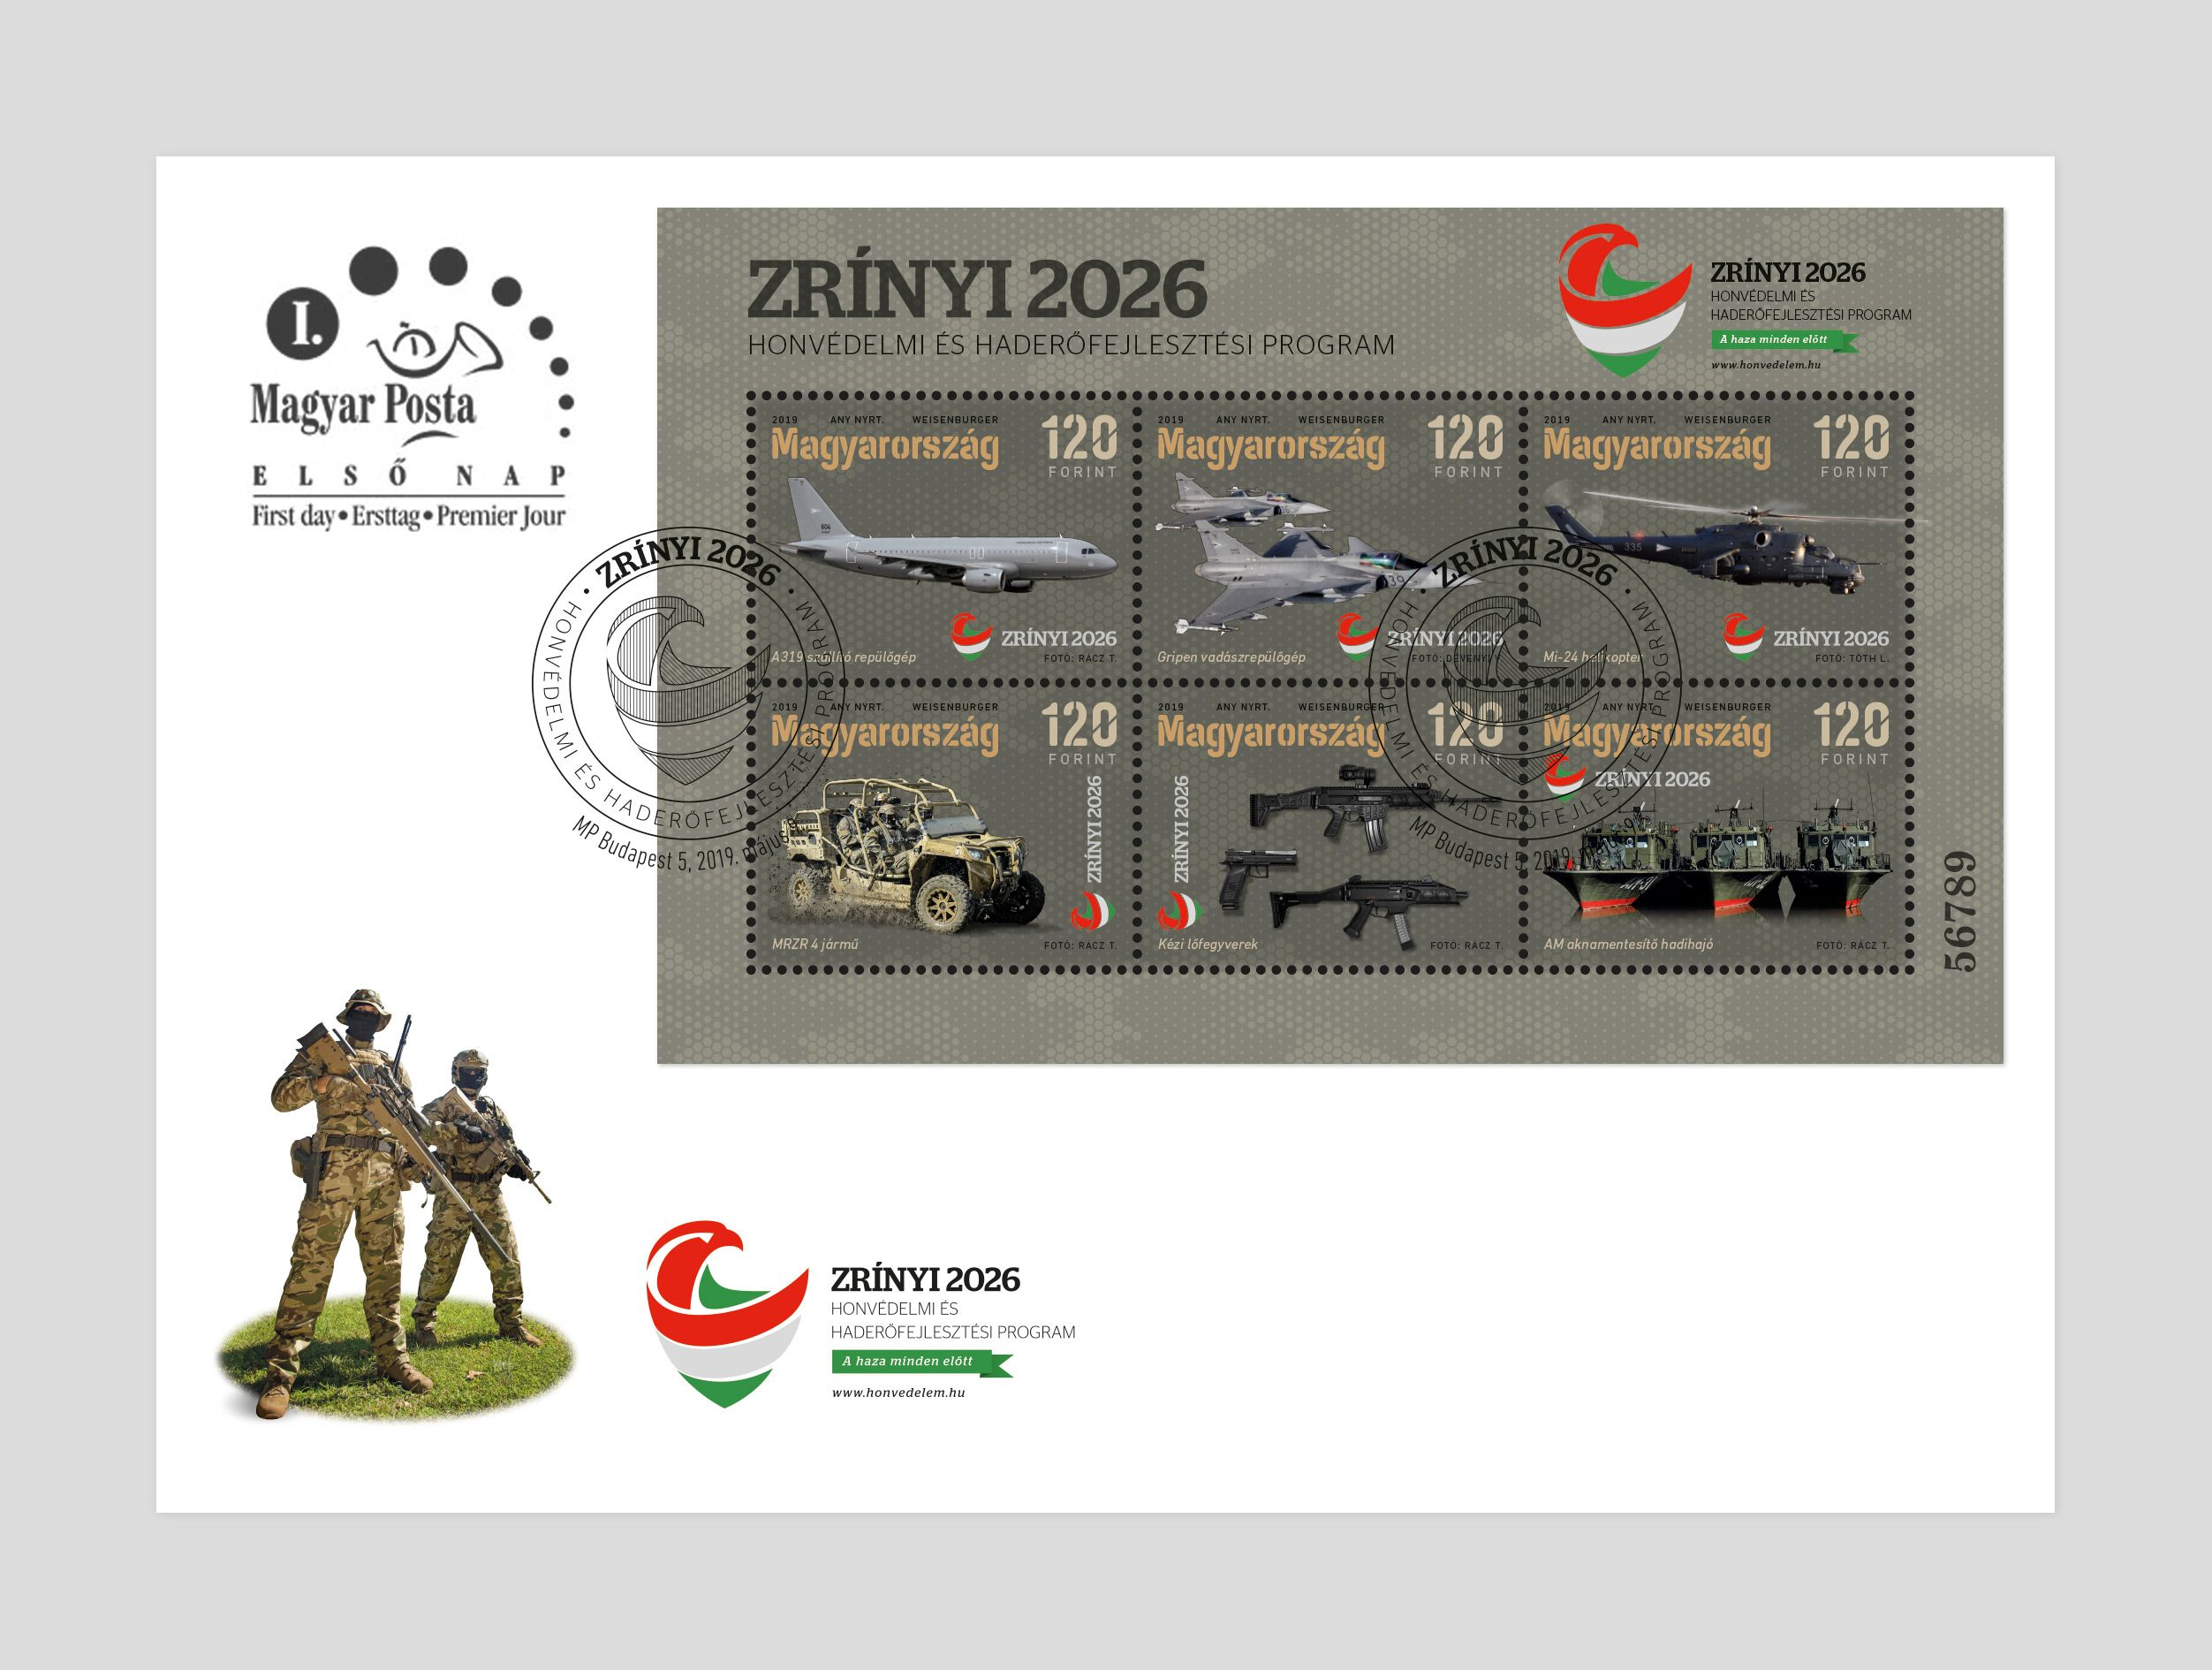 ZRÍNYI 2026 - Defence and Army Development Programme